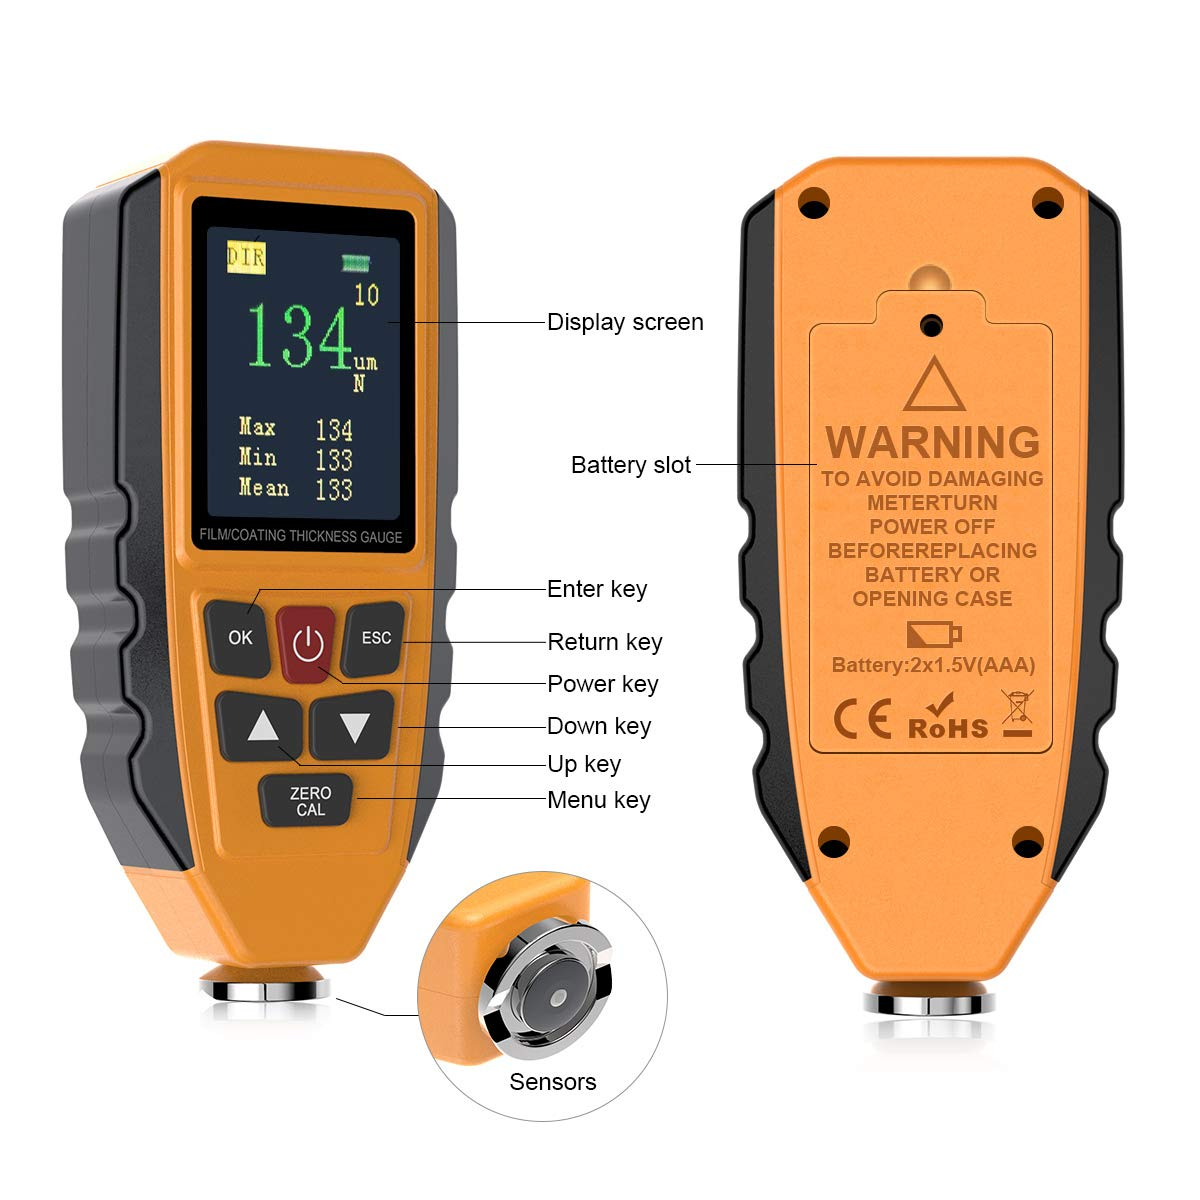 Data Storage//Download ERAY Car Coating Paint Thickness Gauge Meter Digital Handheld with Backlight LCD Display Green Tool Box and Batteries Included